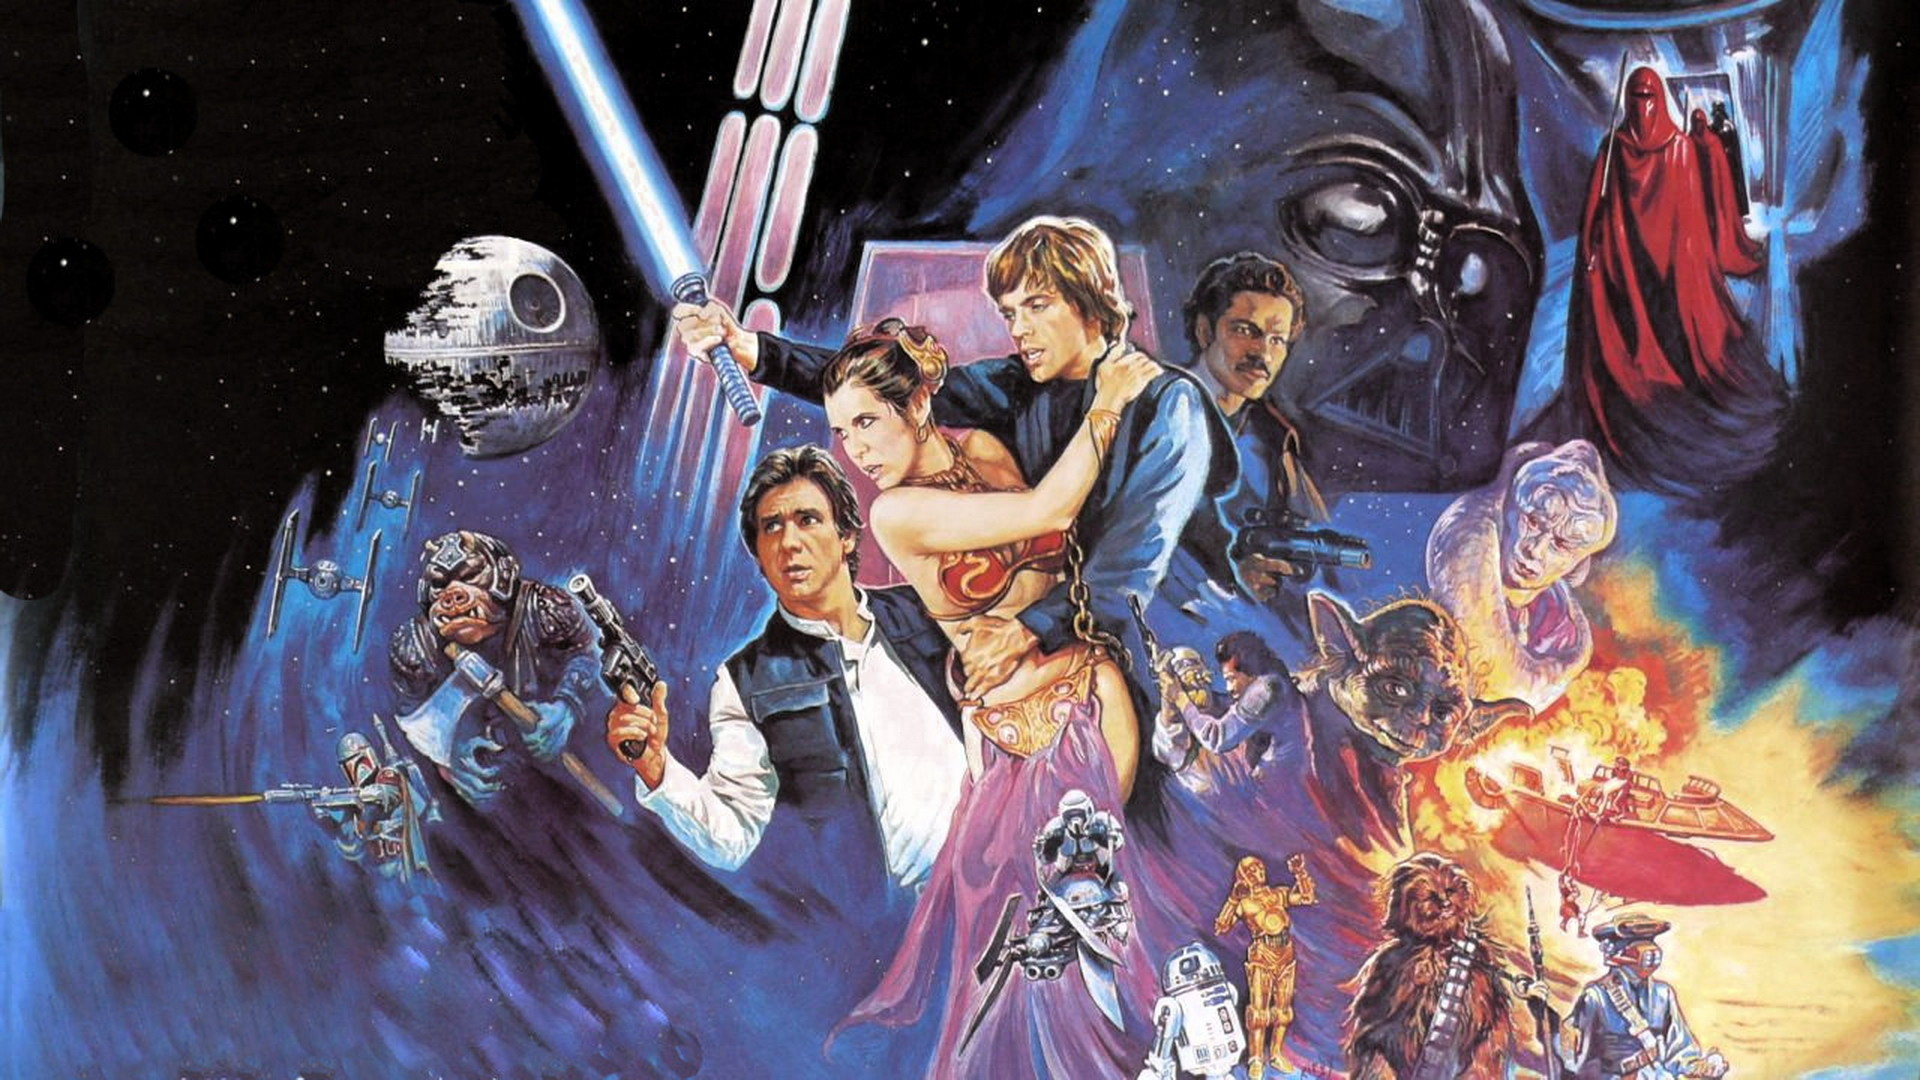 Star Wars Movie Wallpaper 65 Pictures